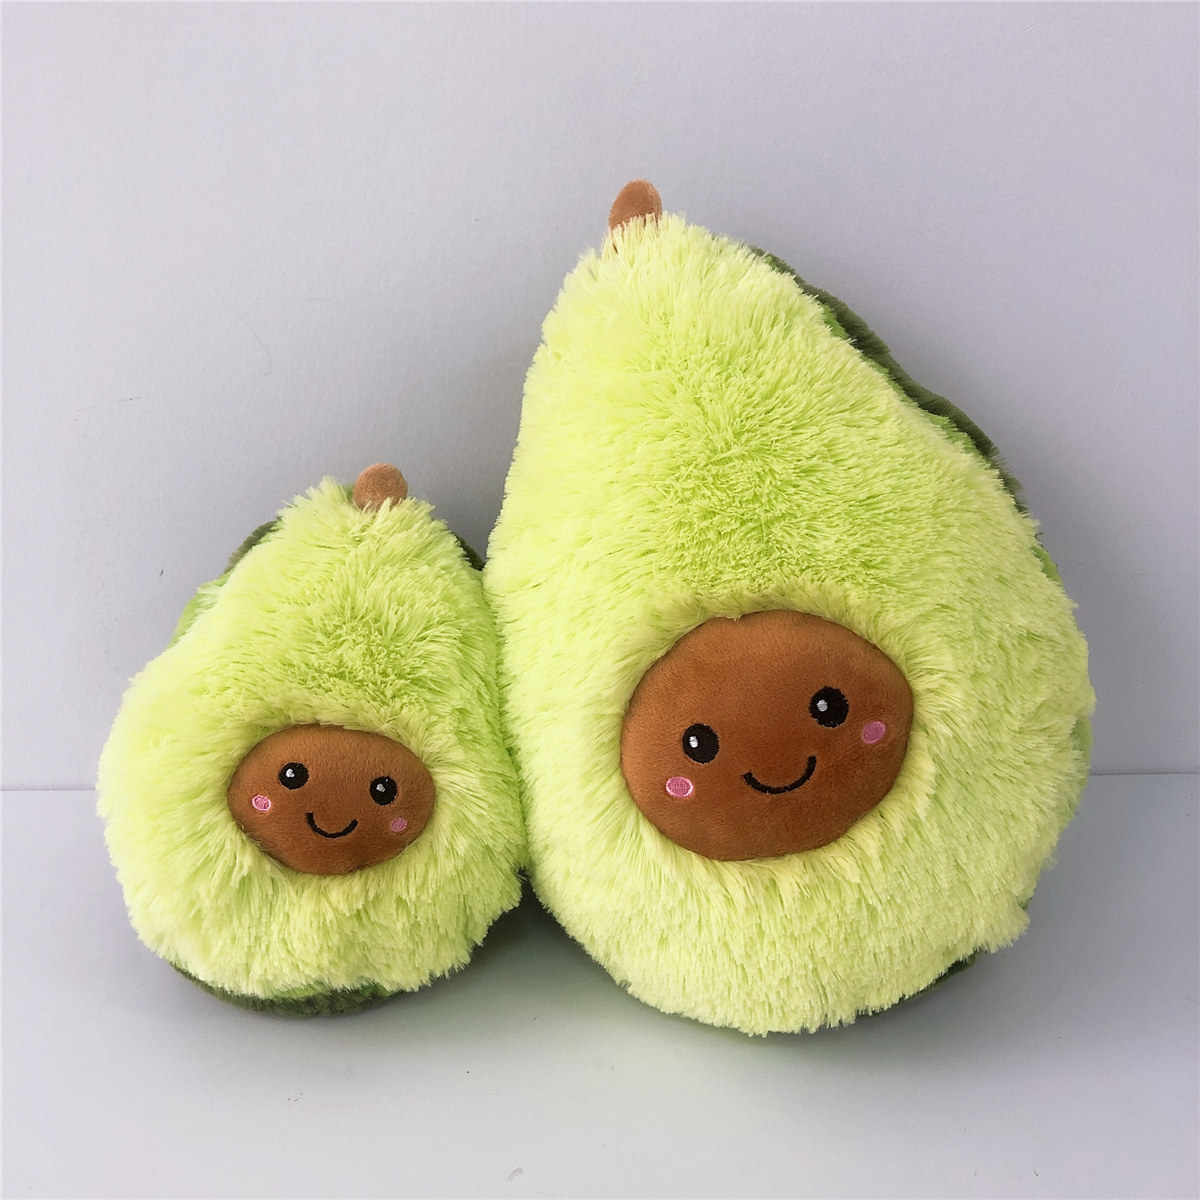 30CM New Plush Avocado Stuffed Plush Toy Filled Doll Cushion Pillow Child Child Christmas Gift Girl Baby Toys